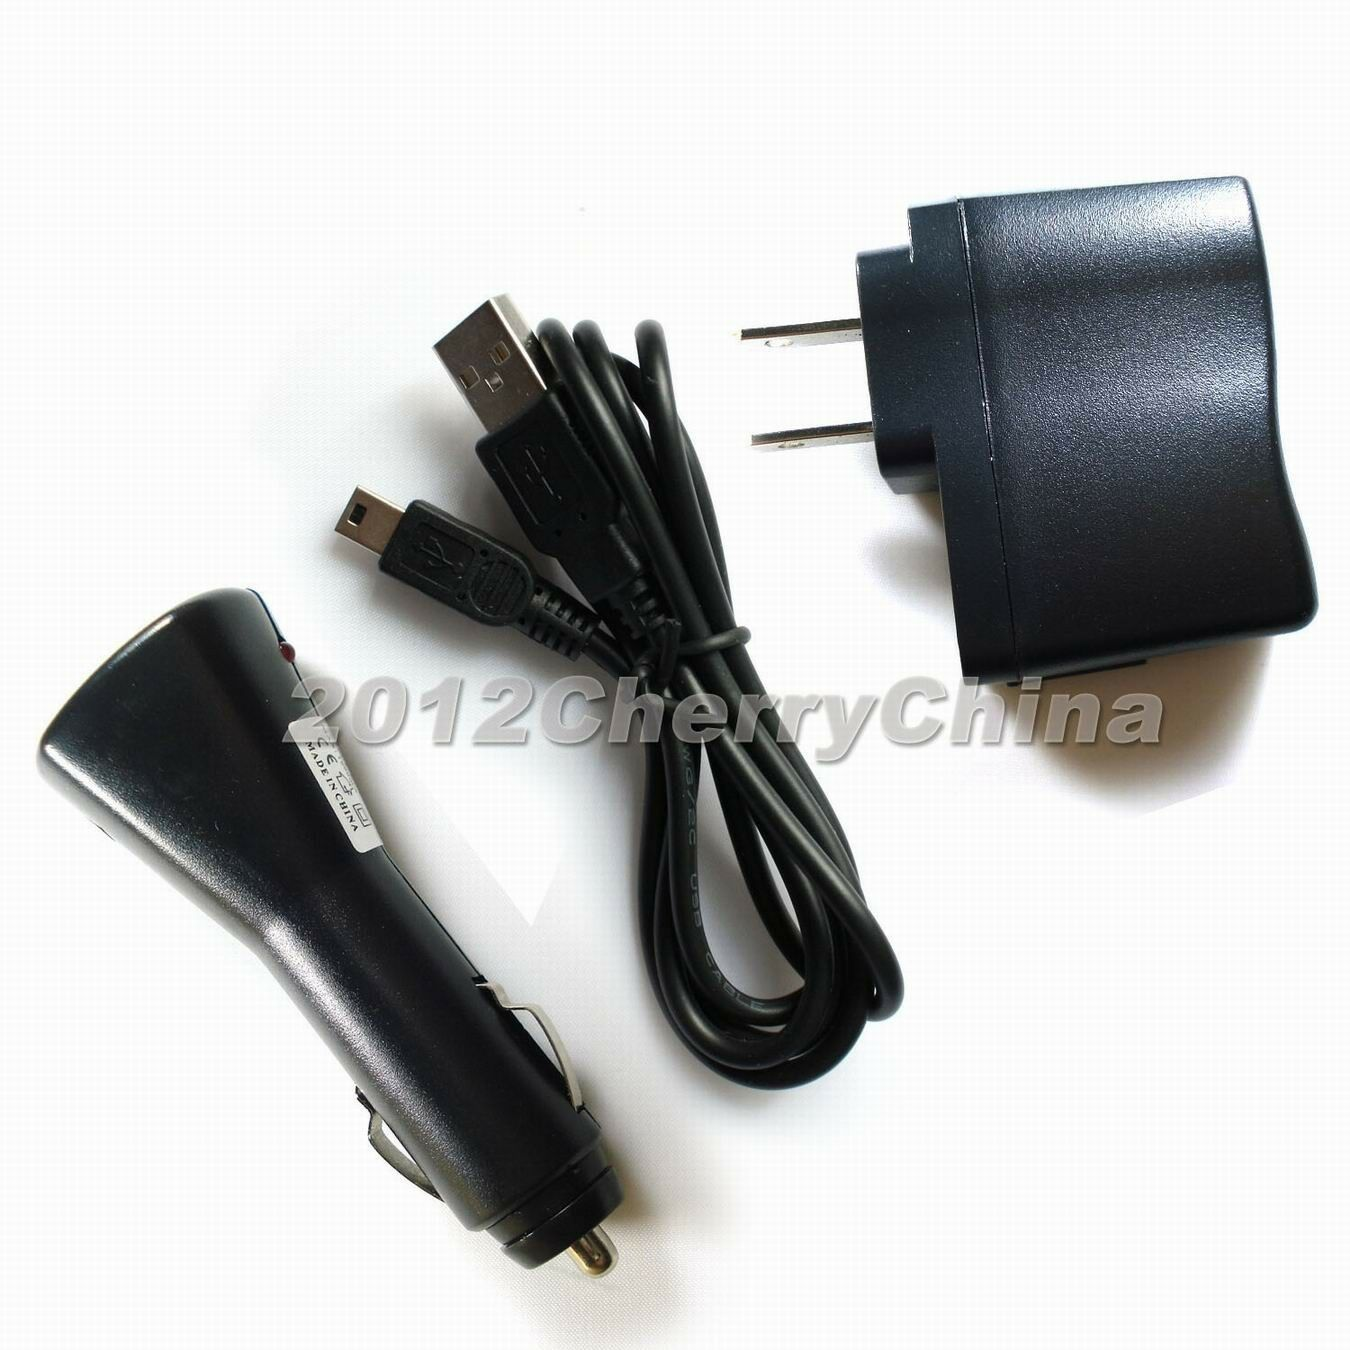 29b9cc0f16e Details about New USB Cable Charger AC Car For Motorola S9-HD H375 T505 H3  headset bluetooth